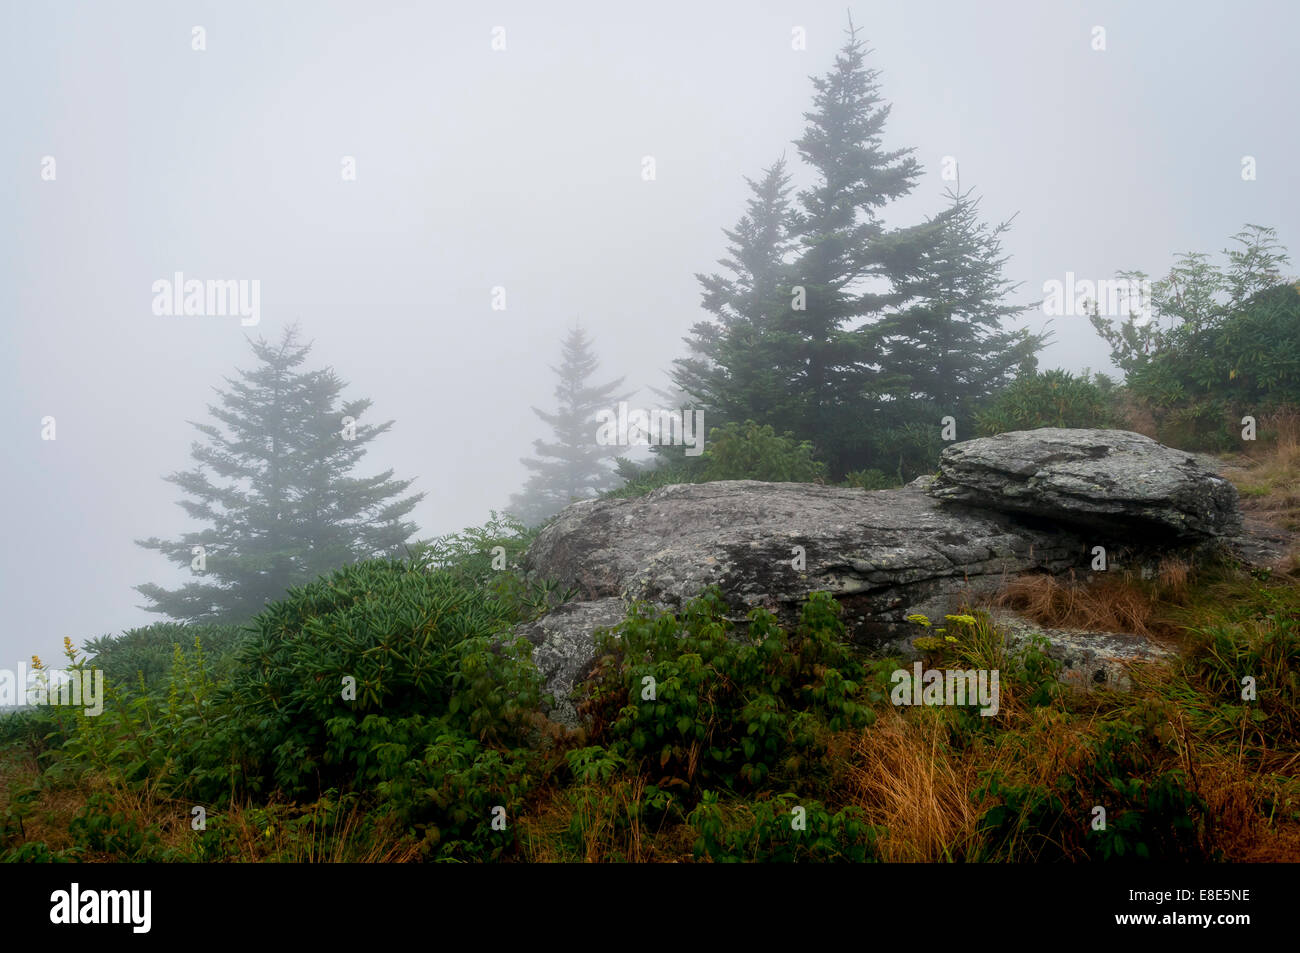 A foggy morning at the edge of the spruce-fir forest along  Grassy Ridge at the top of Roan Mountain in Pisgah National - Stock Image